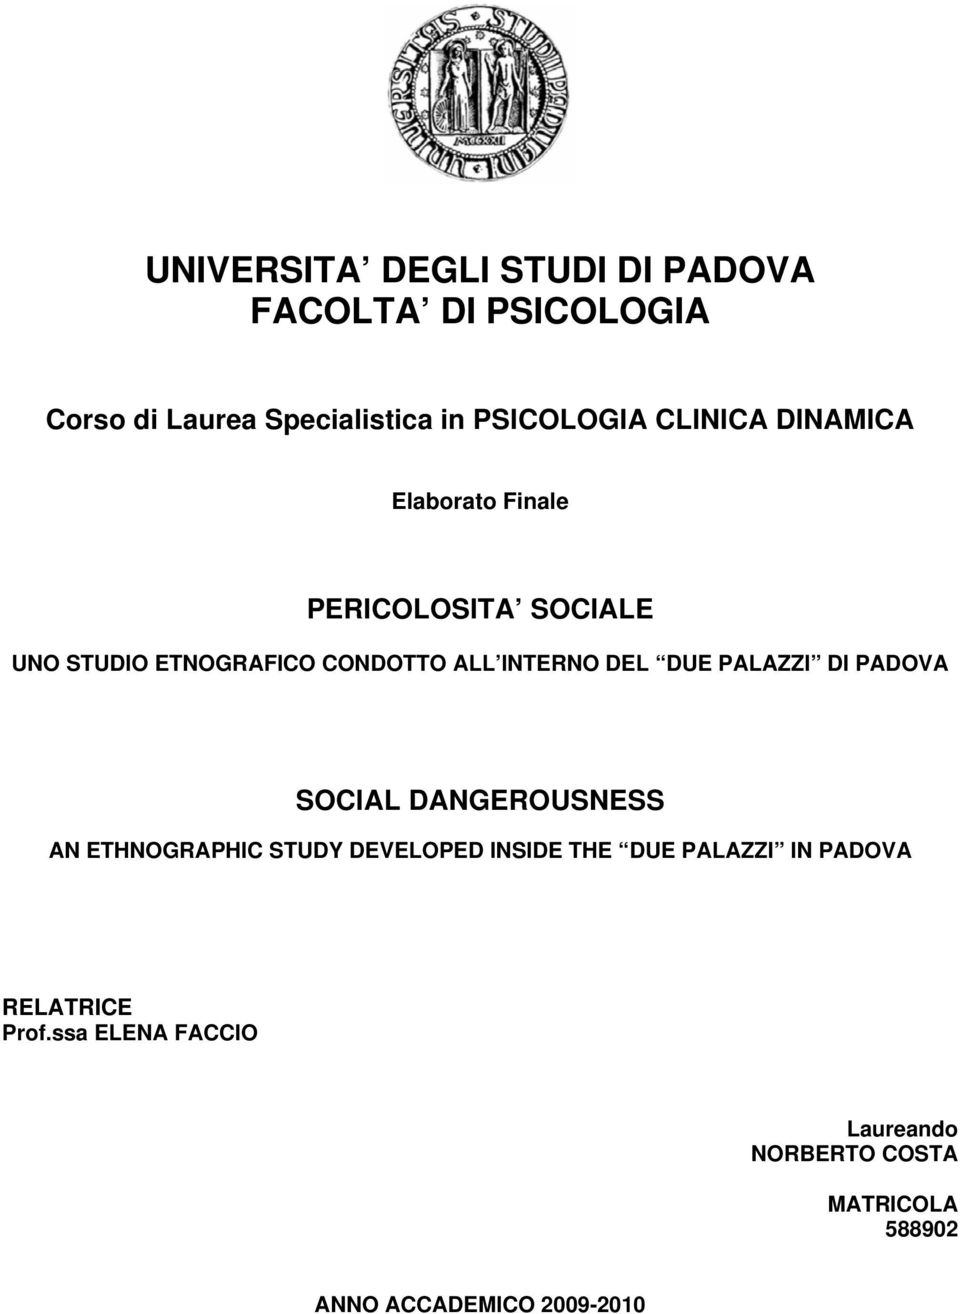 DUE PALAZZI DI PADOVA SOCIAL DANGEROUSNESS AN ETHNOGRAPHIC STUDY DEVELOPED INSIDE THE DUE PALAZZI IN